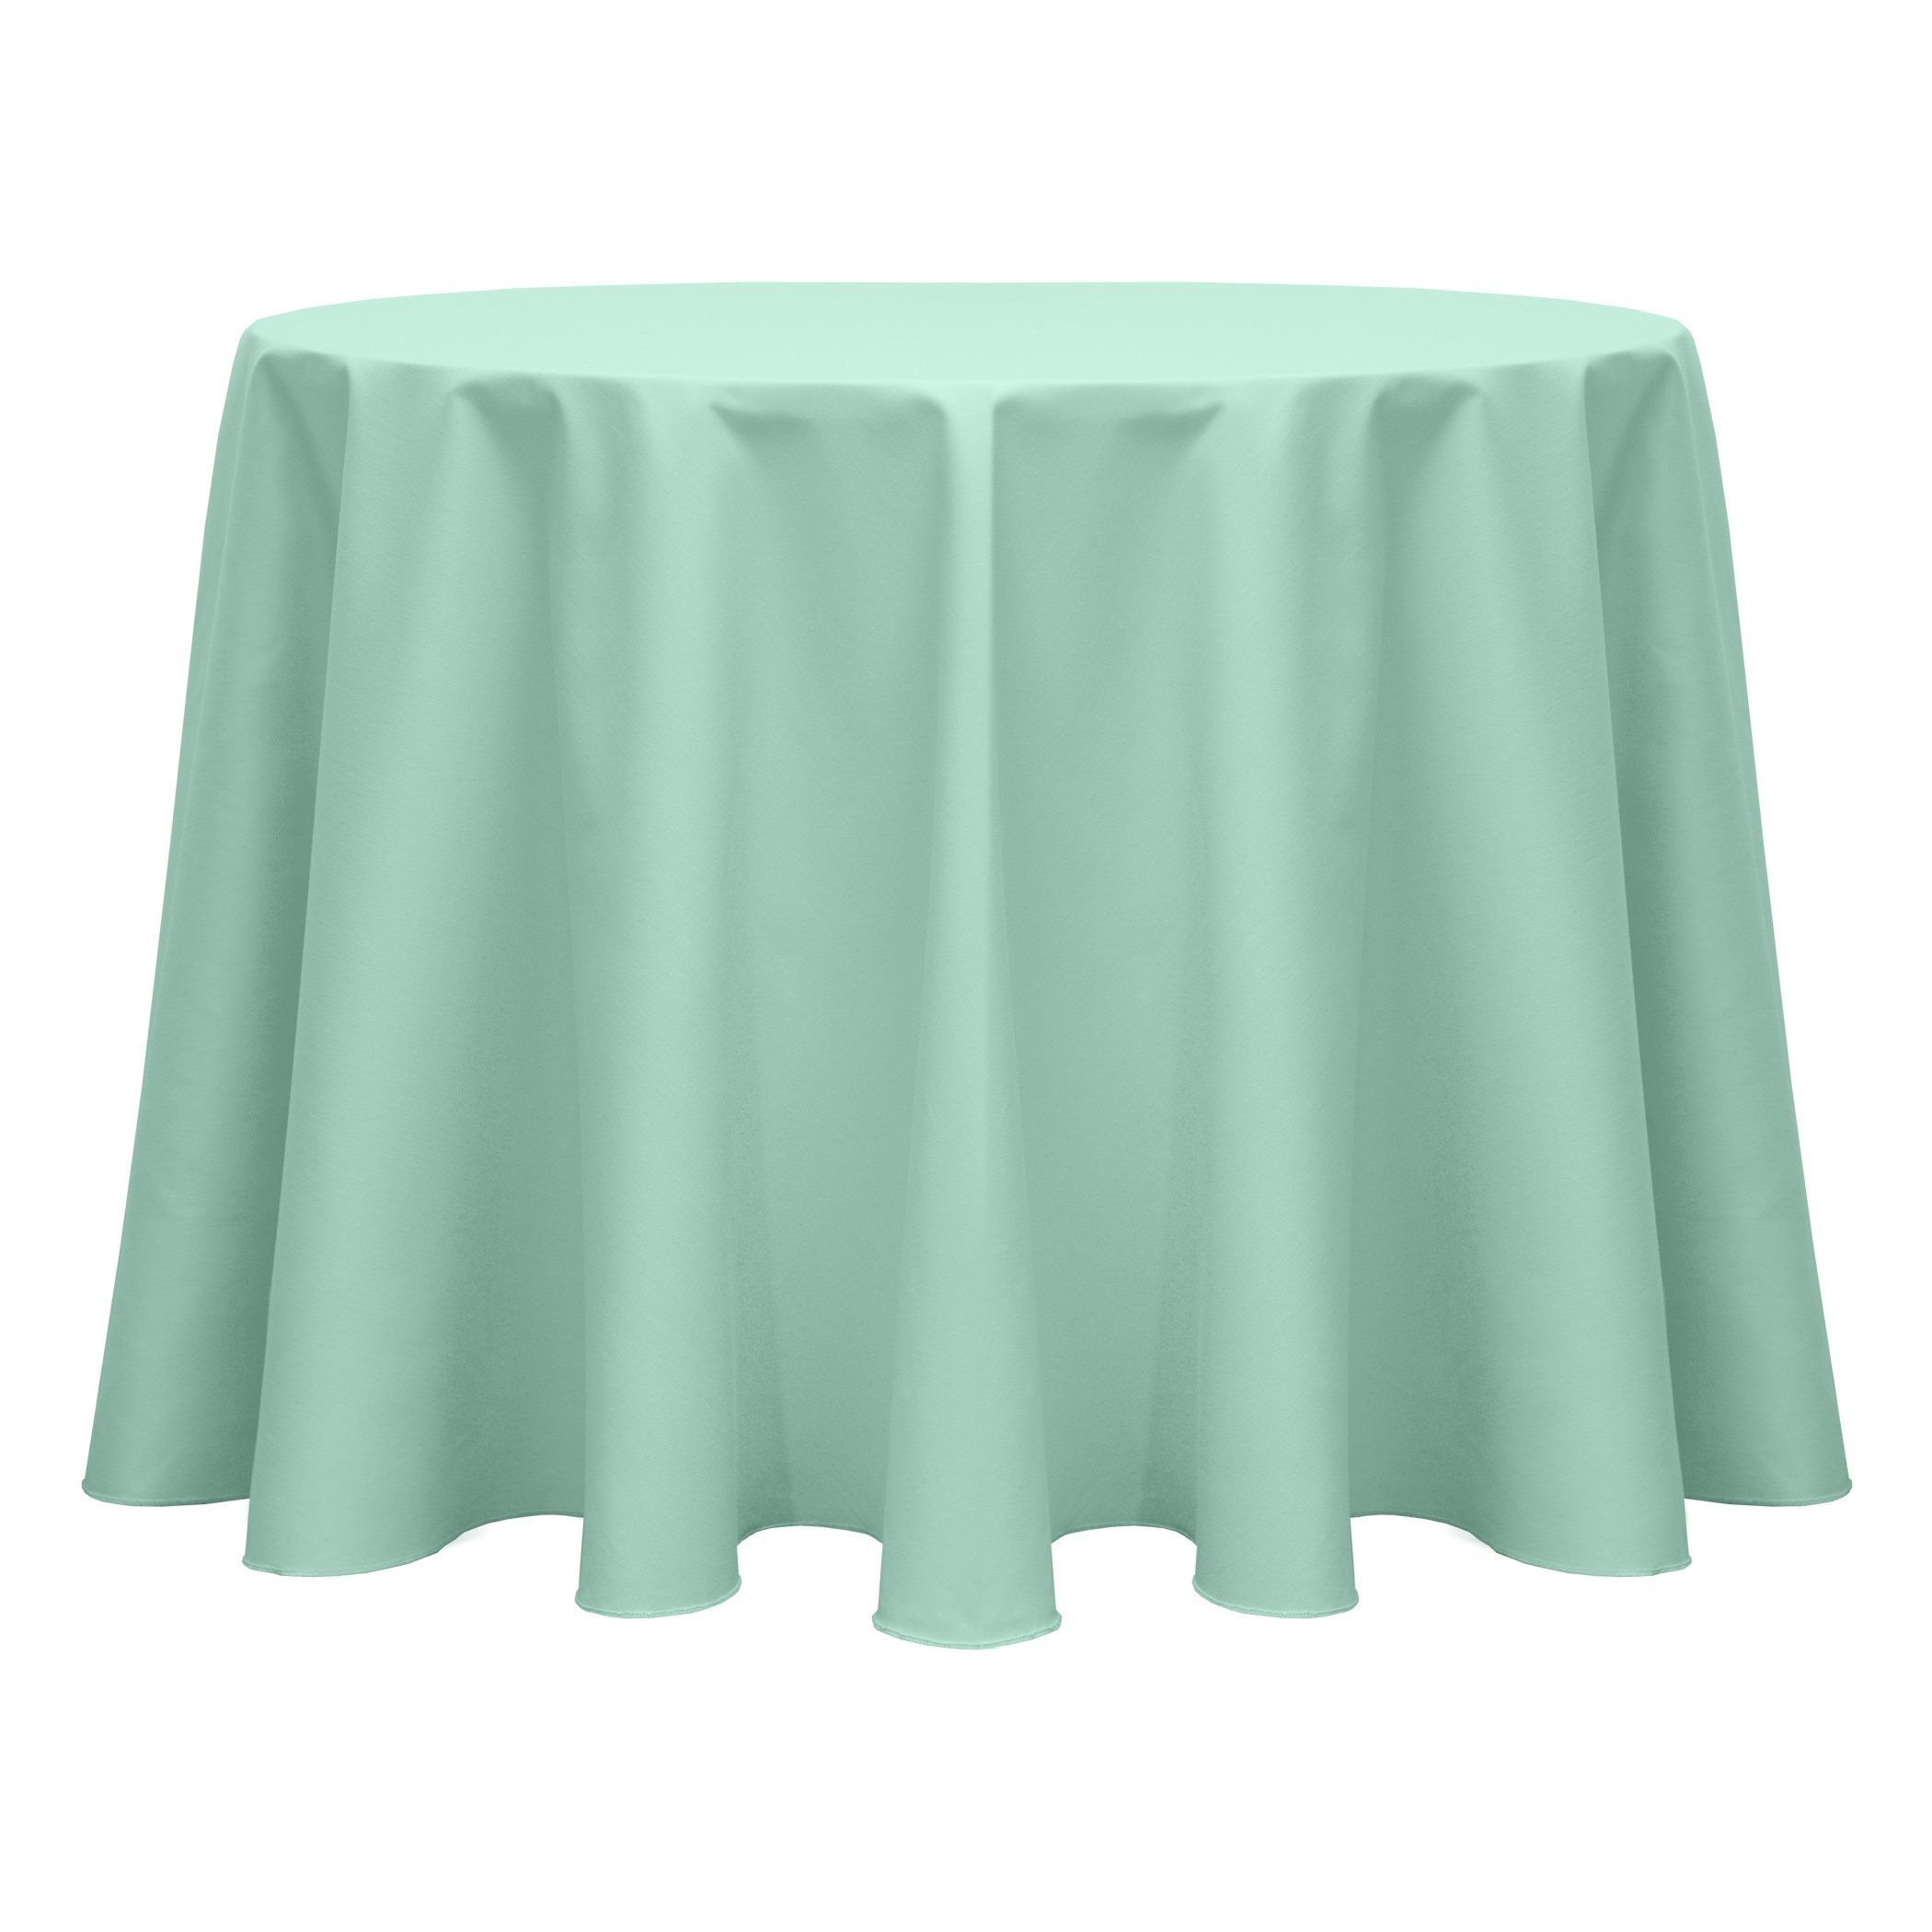 Ultimate Textile (40 Pack) Poly-cotton Twill 70-Inch Round Tablecloth - for Restaurant and Catering, Hotel or Home Dining use, Seamist Light Green